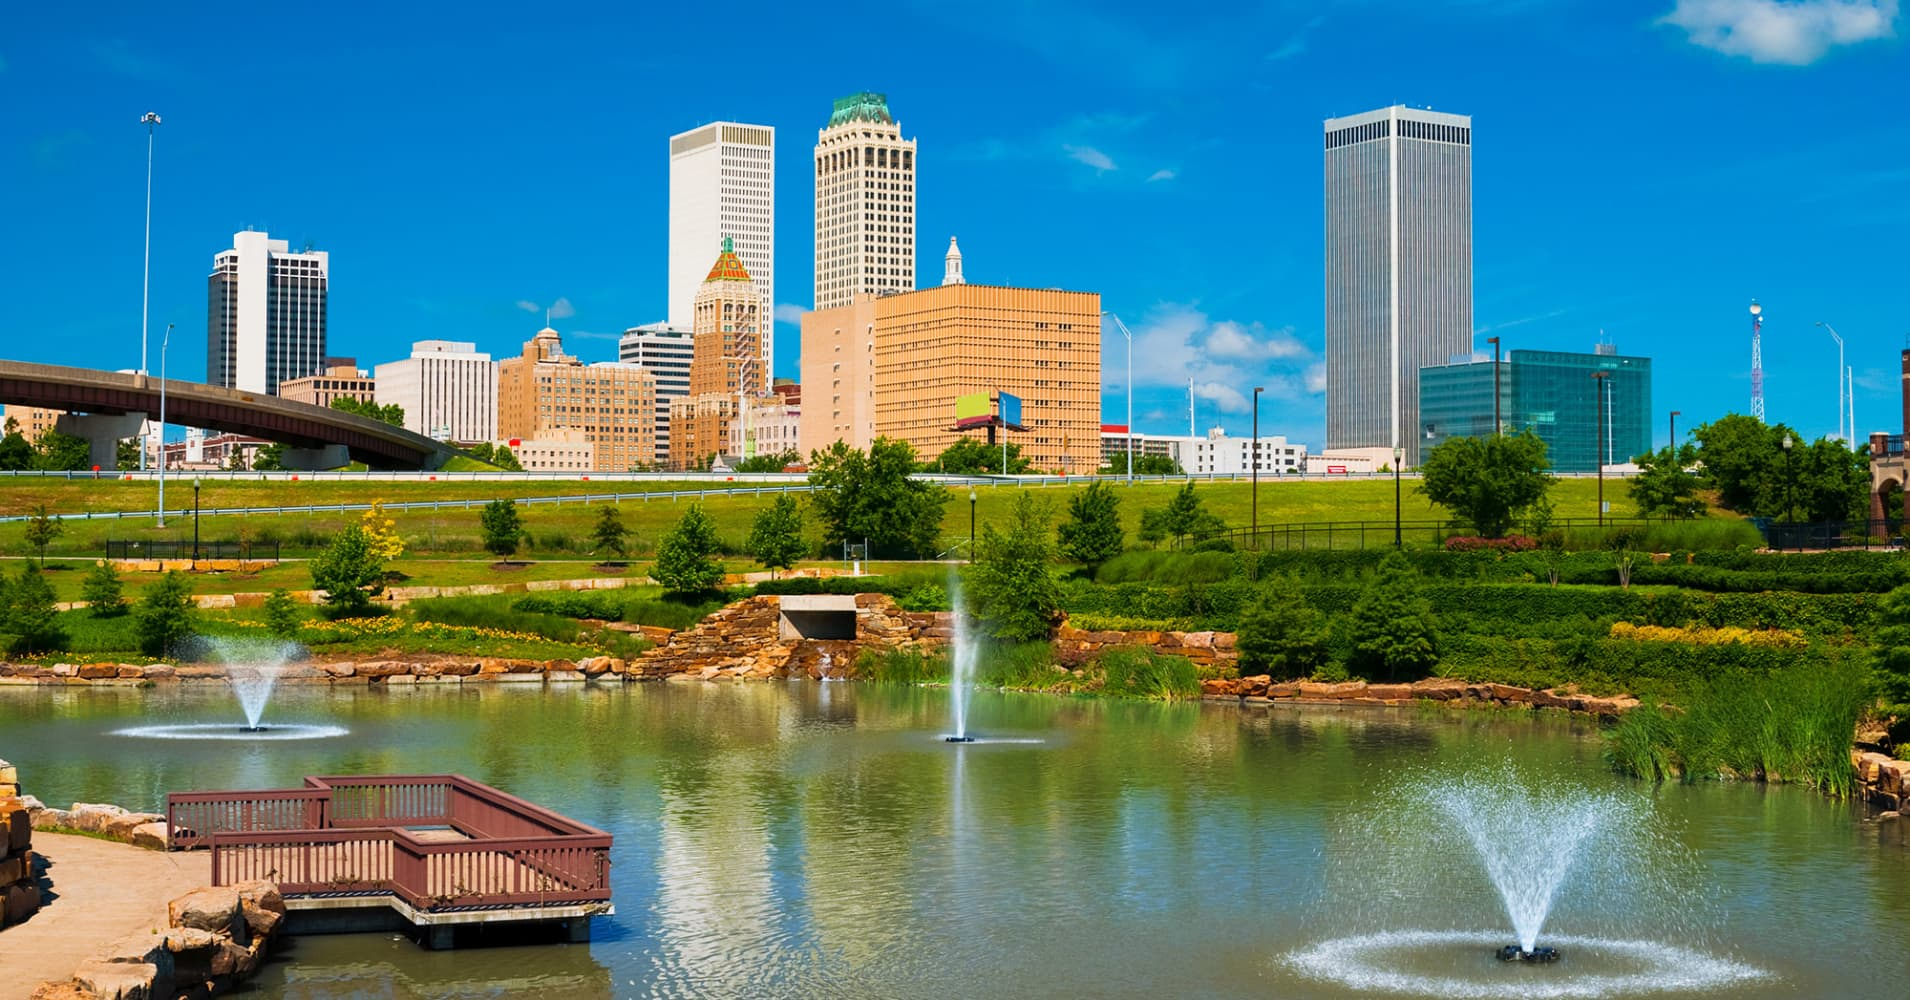 Tulsa, Oklahoma, will pay you $10,000 to move there and work from home